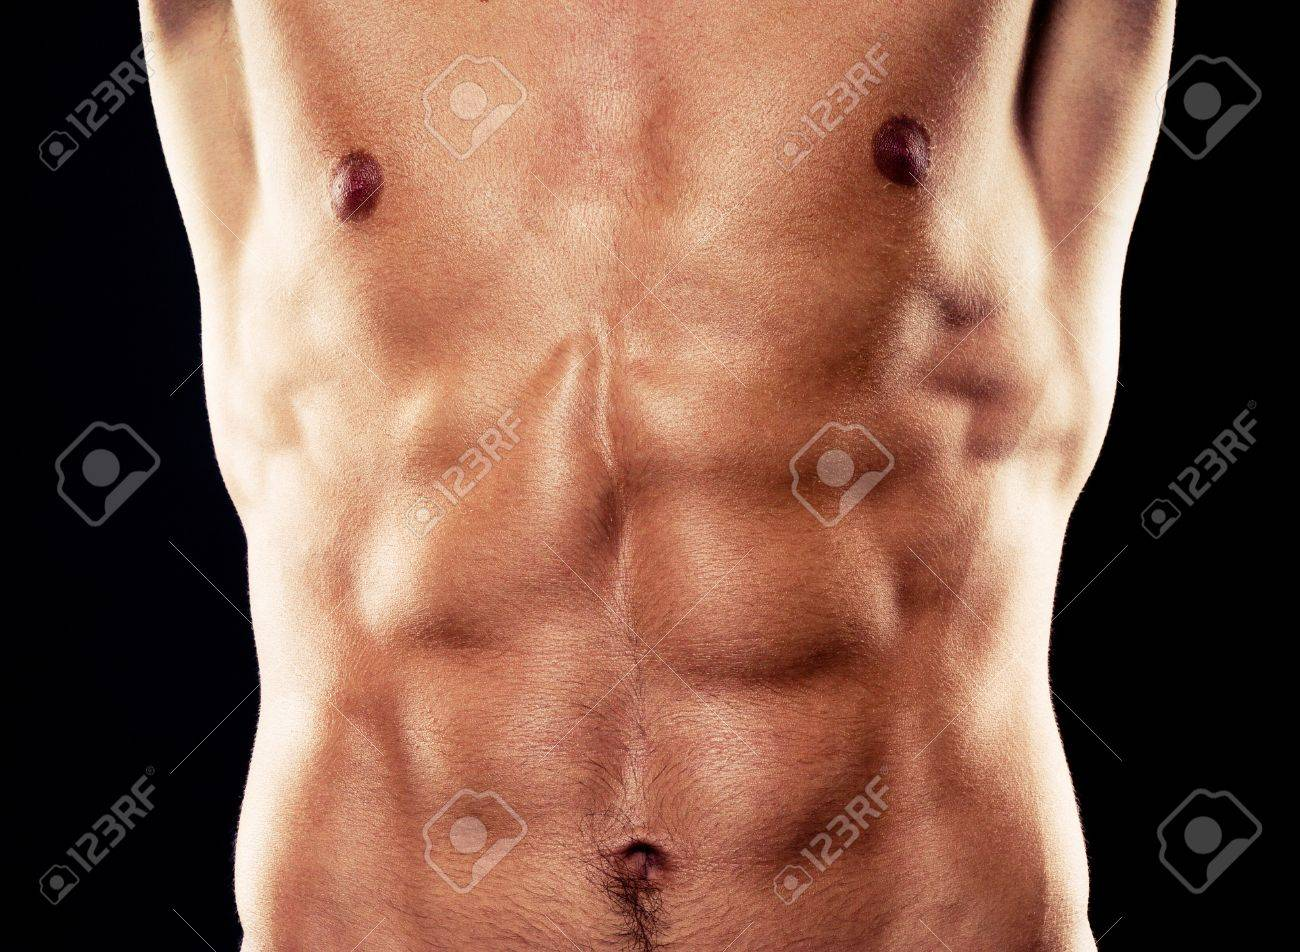 torso of young muscular man, isolated on black background Stock Photo - 12714403